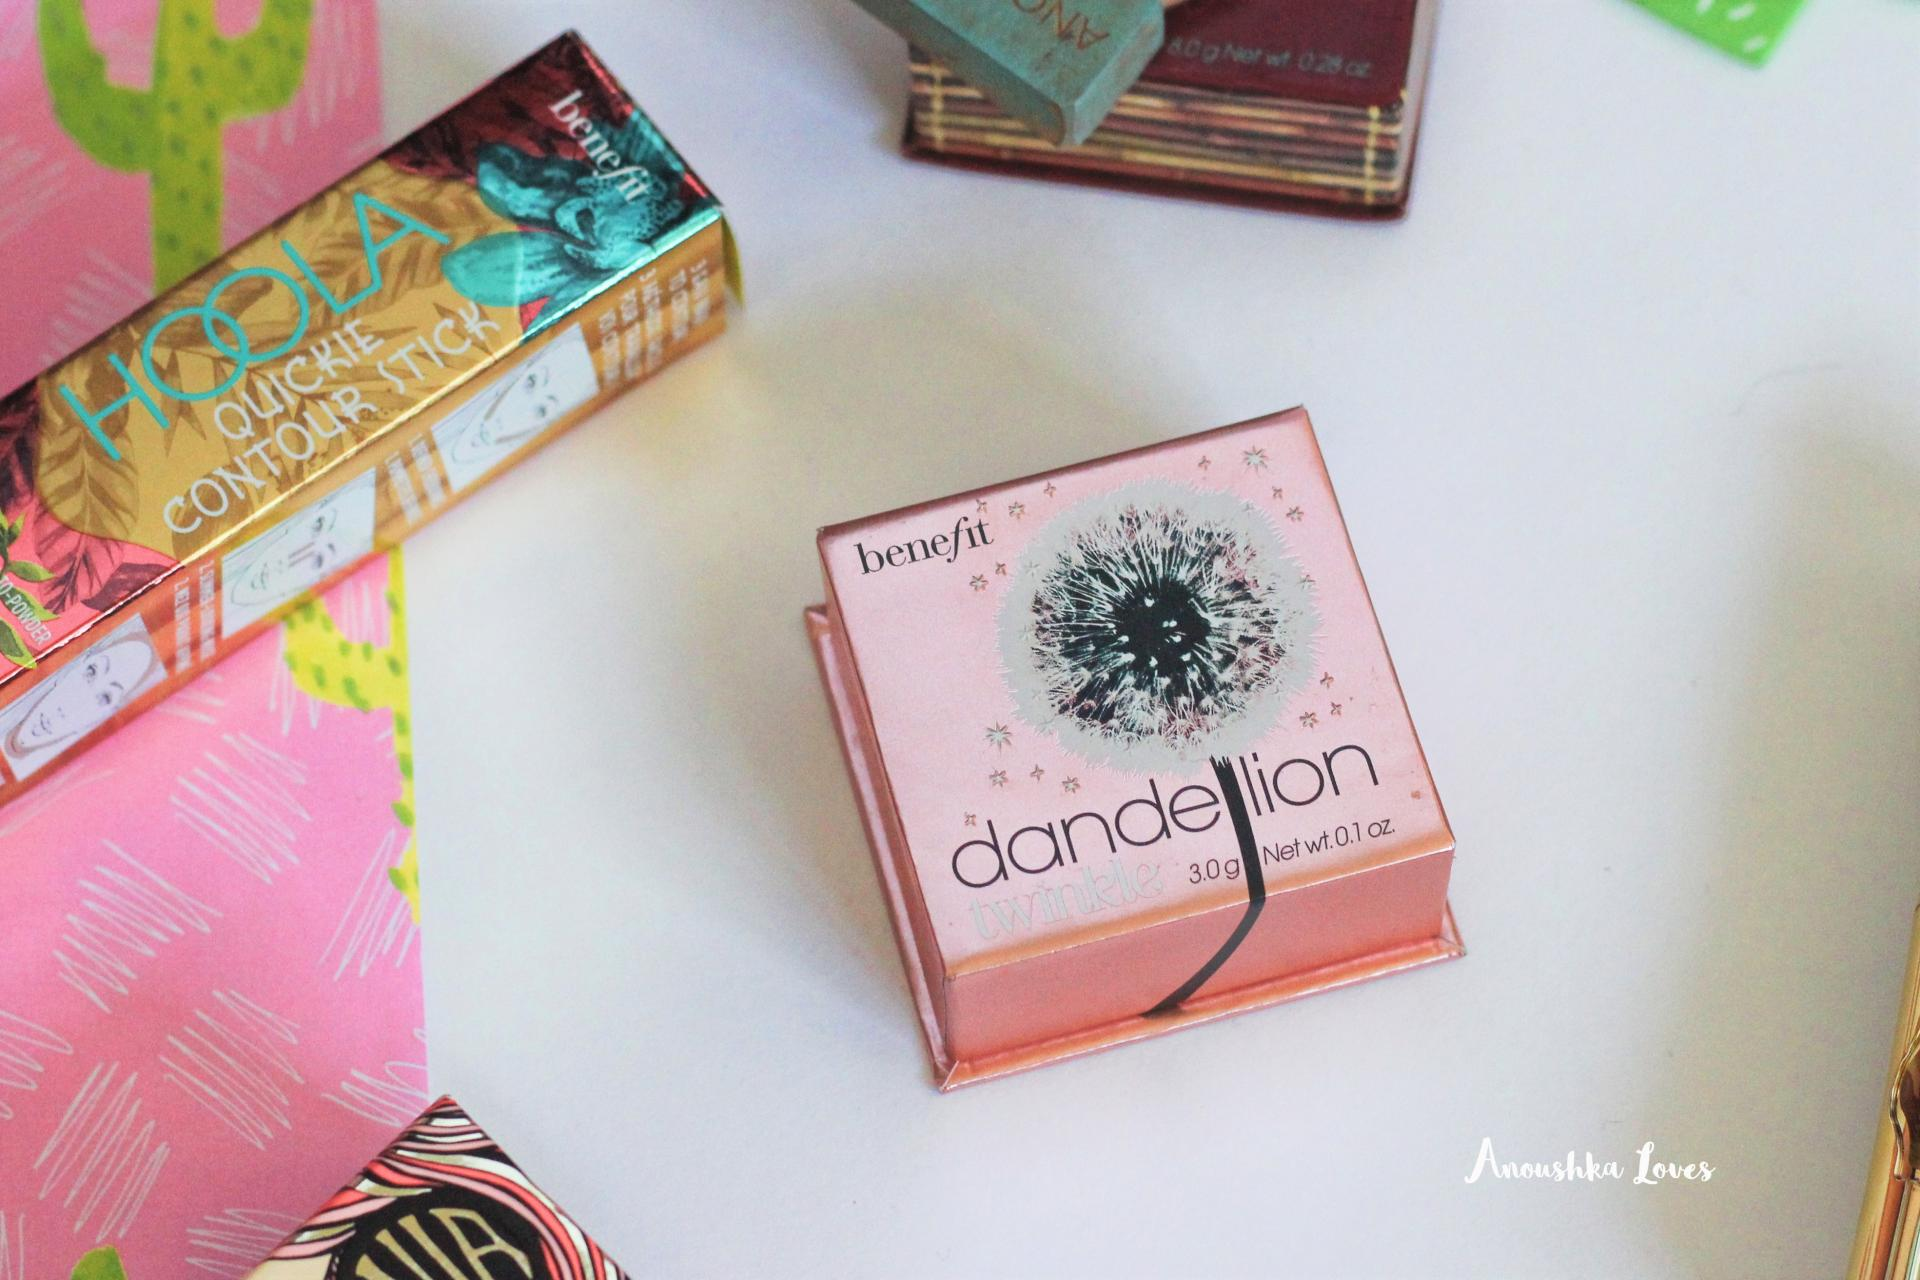 The Summer Face with Benefit Cosmetics Dandelion Twinkle Highlighter Powder